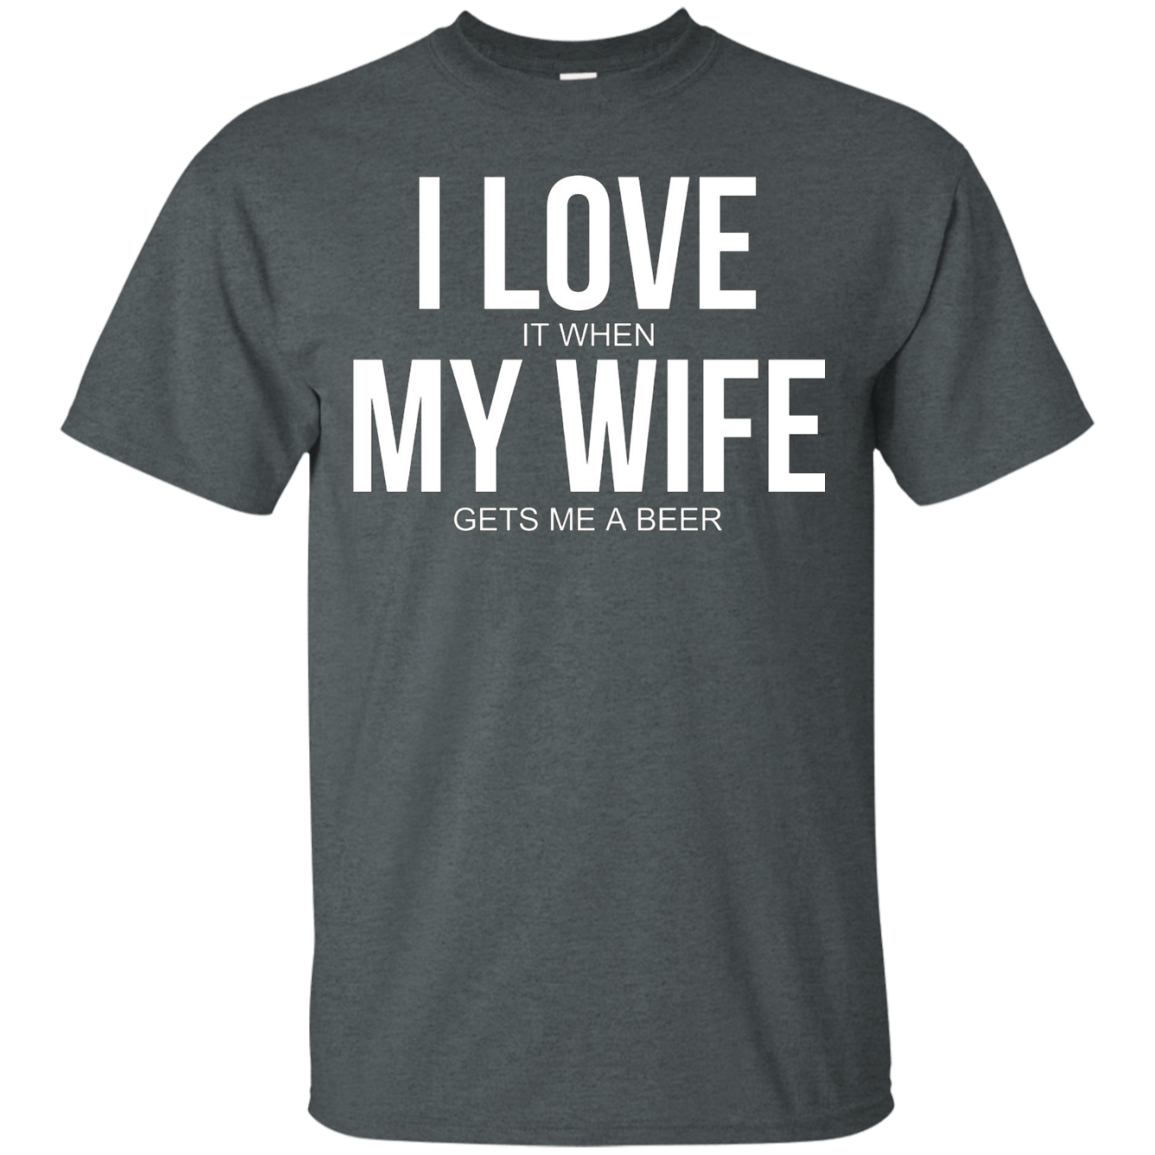 e778bbb18 Men's Funny I Love (it when) My Wife (gets me a beer) T-shirt ...